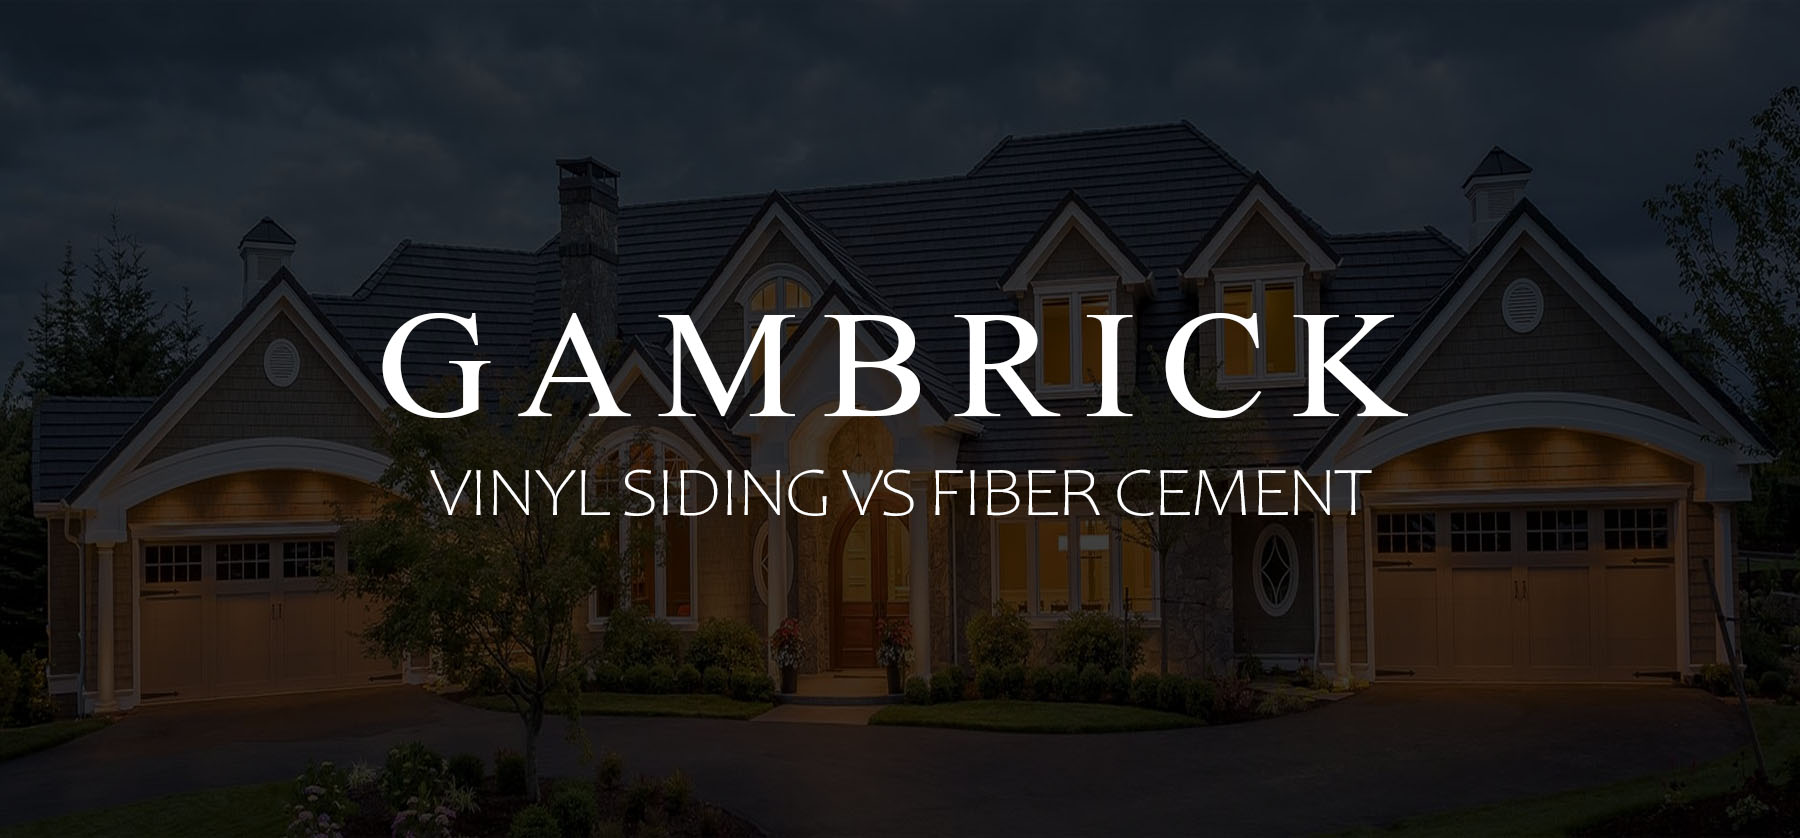 vinyl siding vs fiber cement banner picture